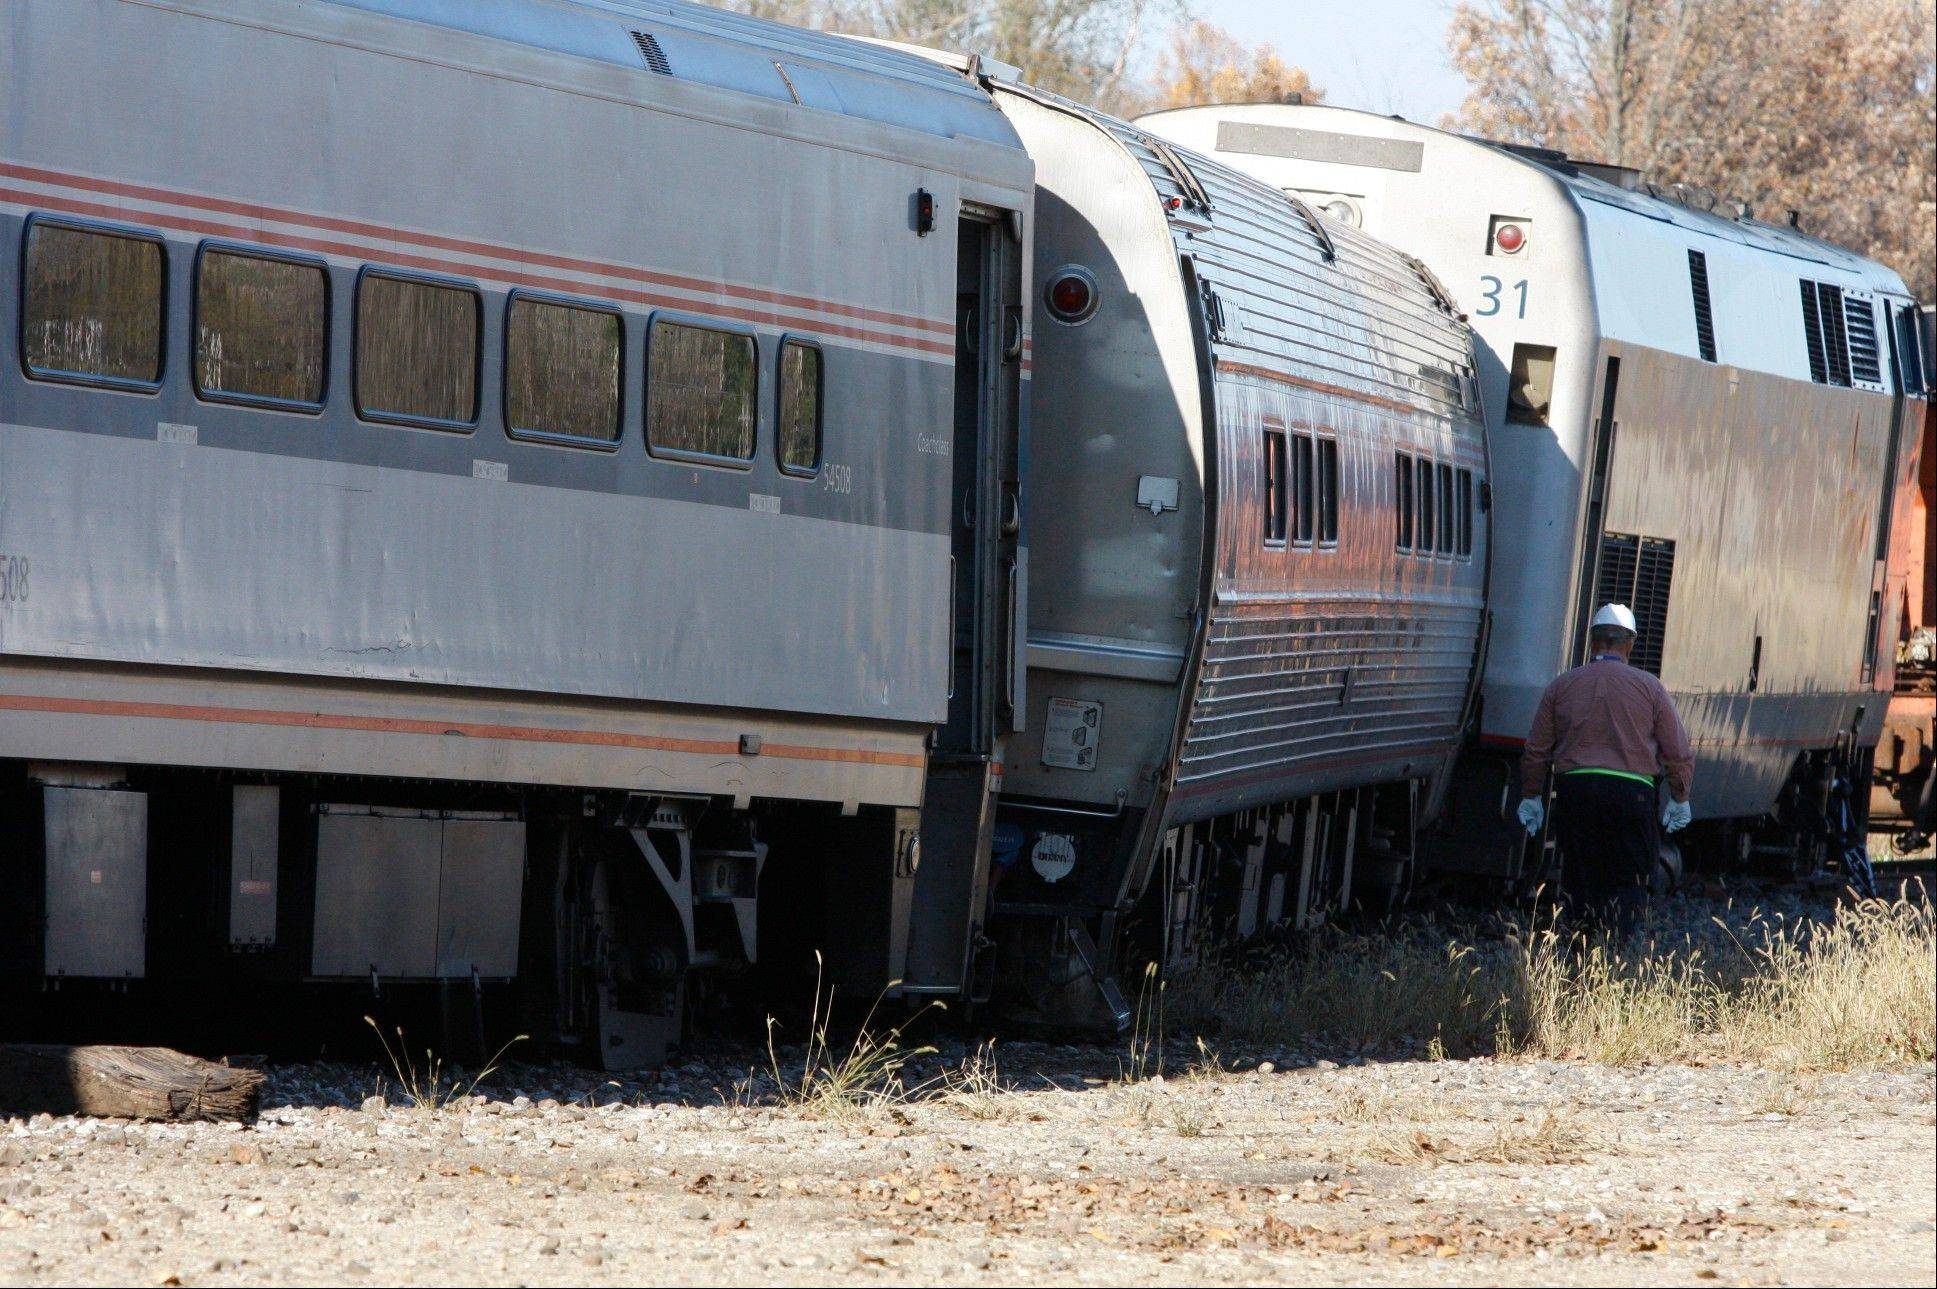 Investigators from Amtrak look over the scene of where a train derailed in Niles, Mich. shortly before 10:30 a.m. Sunday. About a dozen passengers and crew on an Amtrak train from Chicago to Pontiac, north of Detroit, were injured.